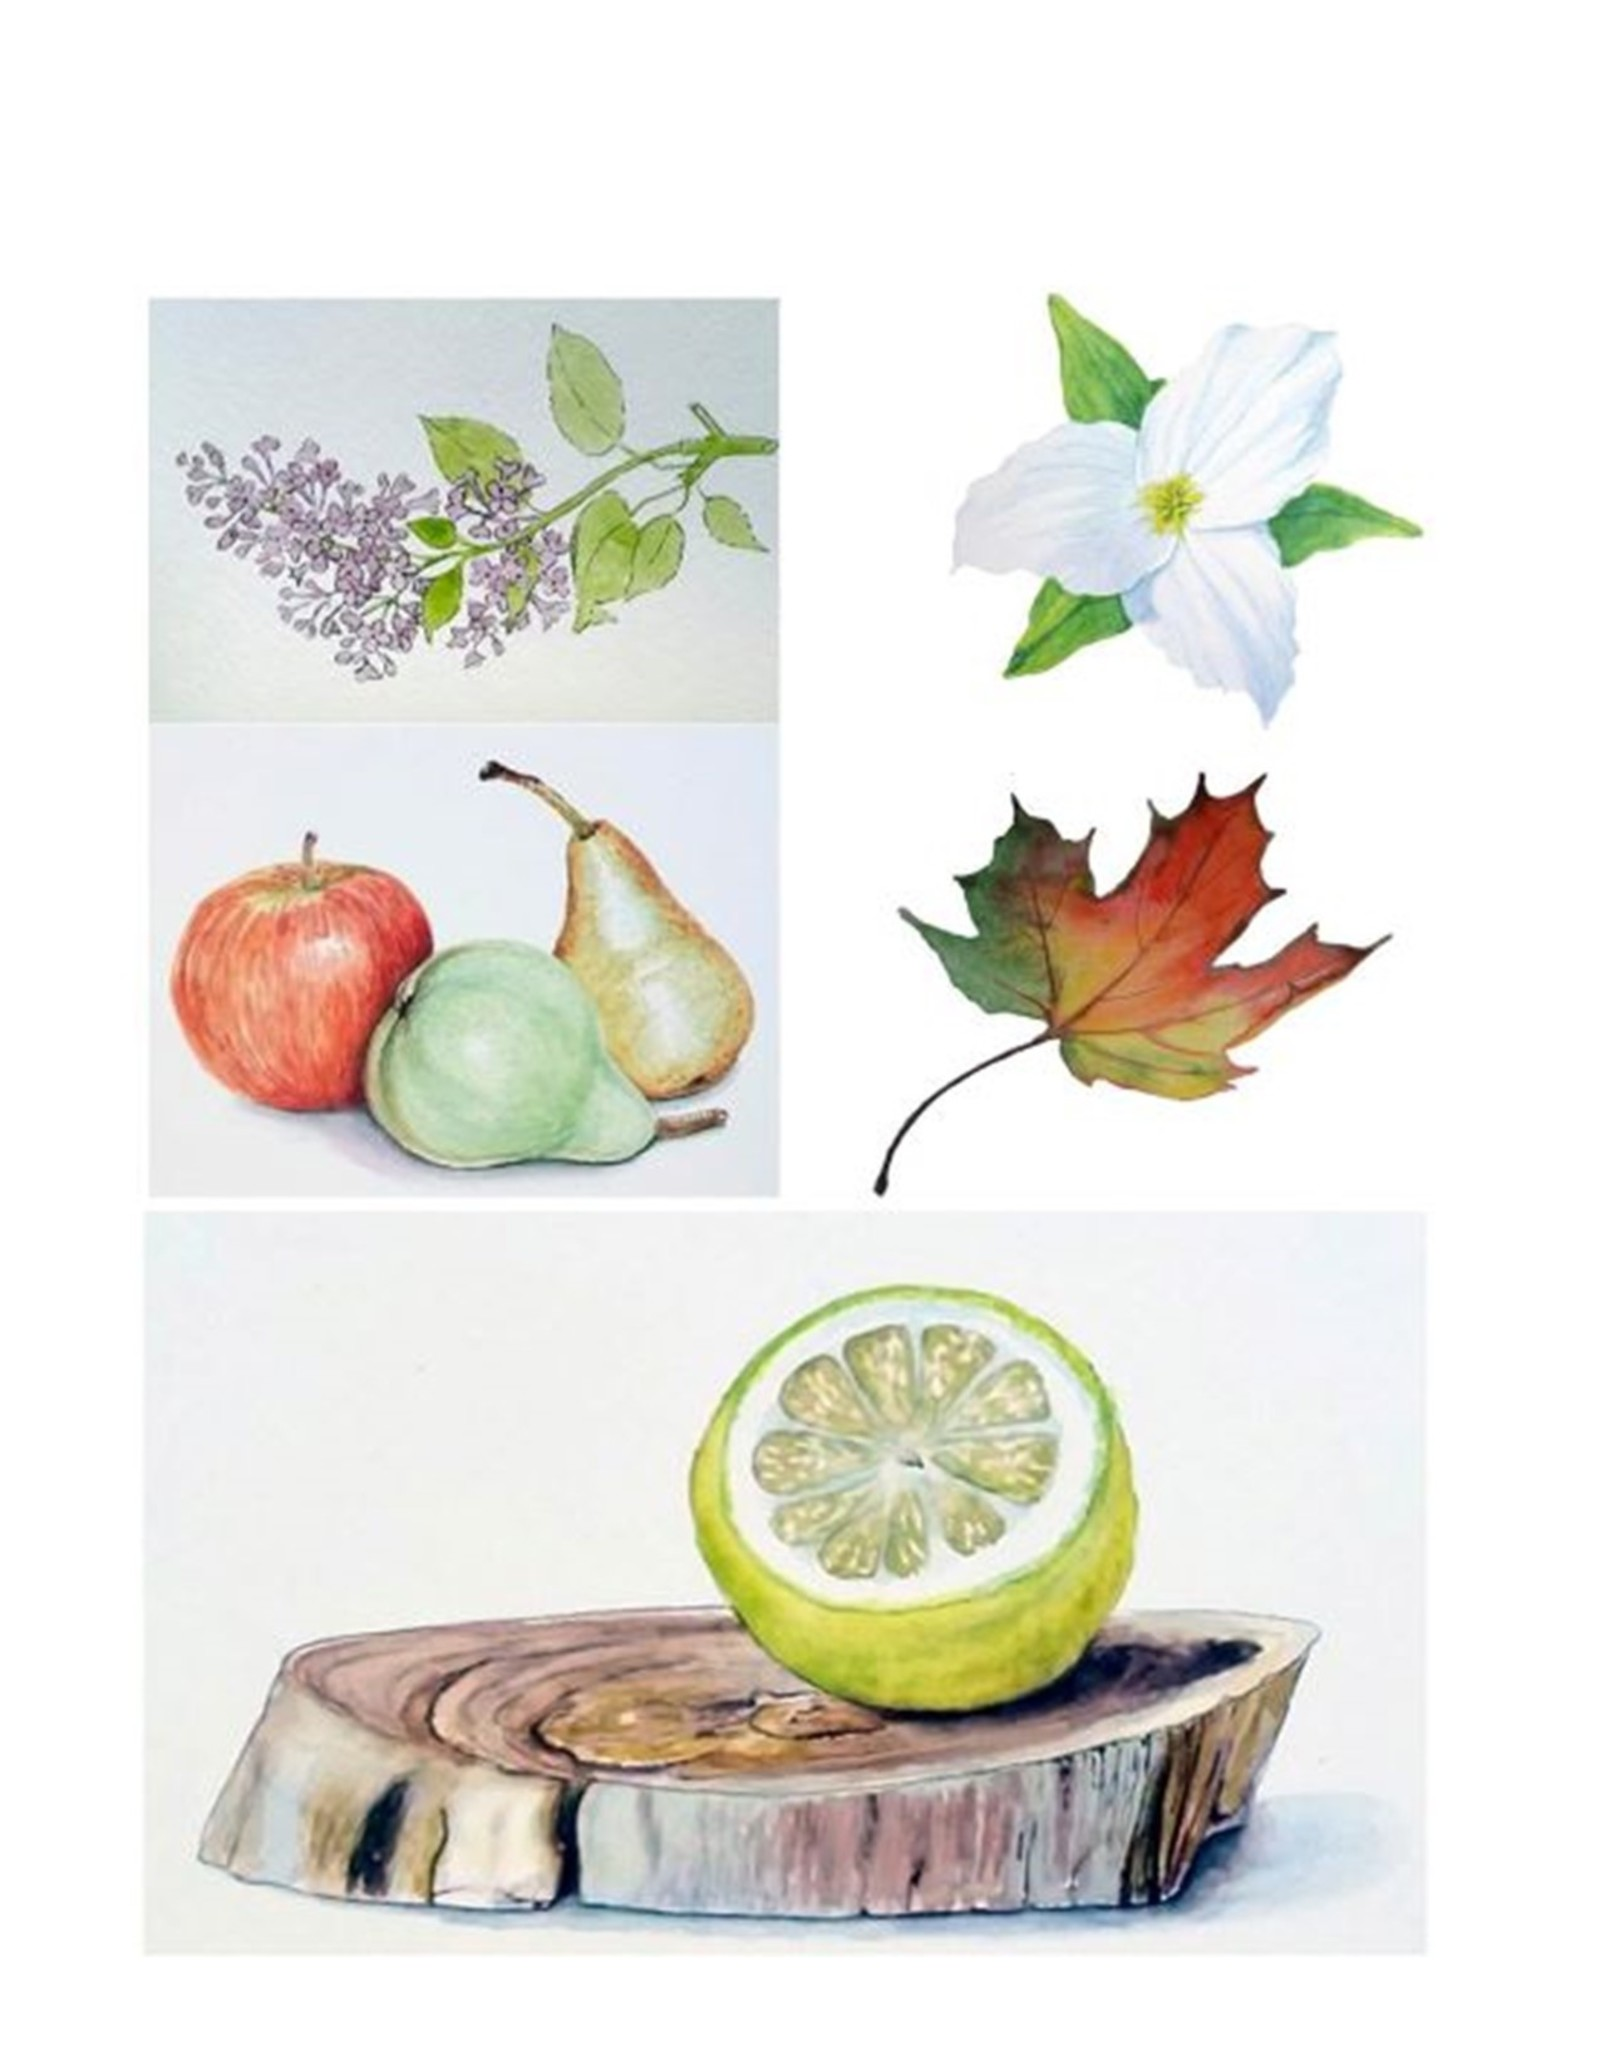 Tamara S Watercolour Level 1 Art Class Tues Oct 5 to Tues Oct 26 1:00 to 3:00 pm